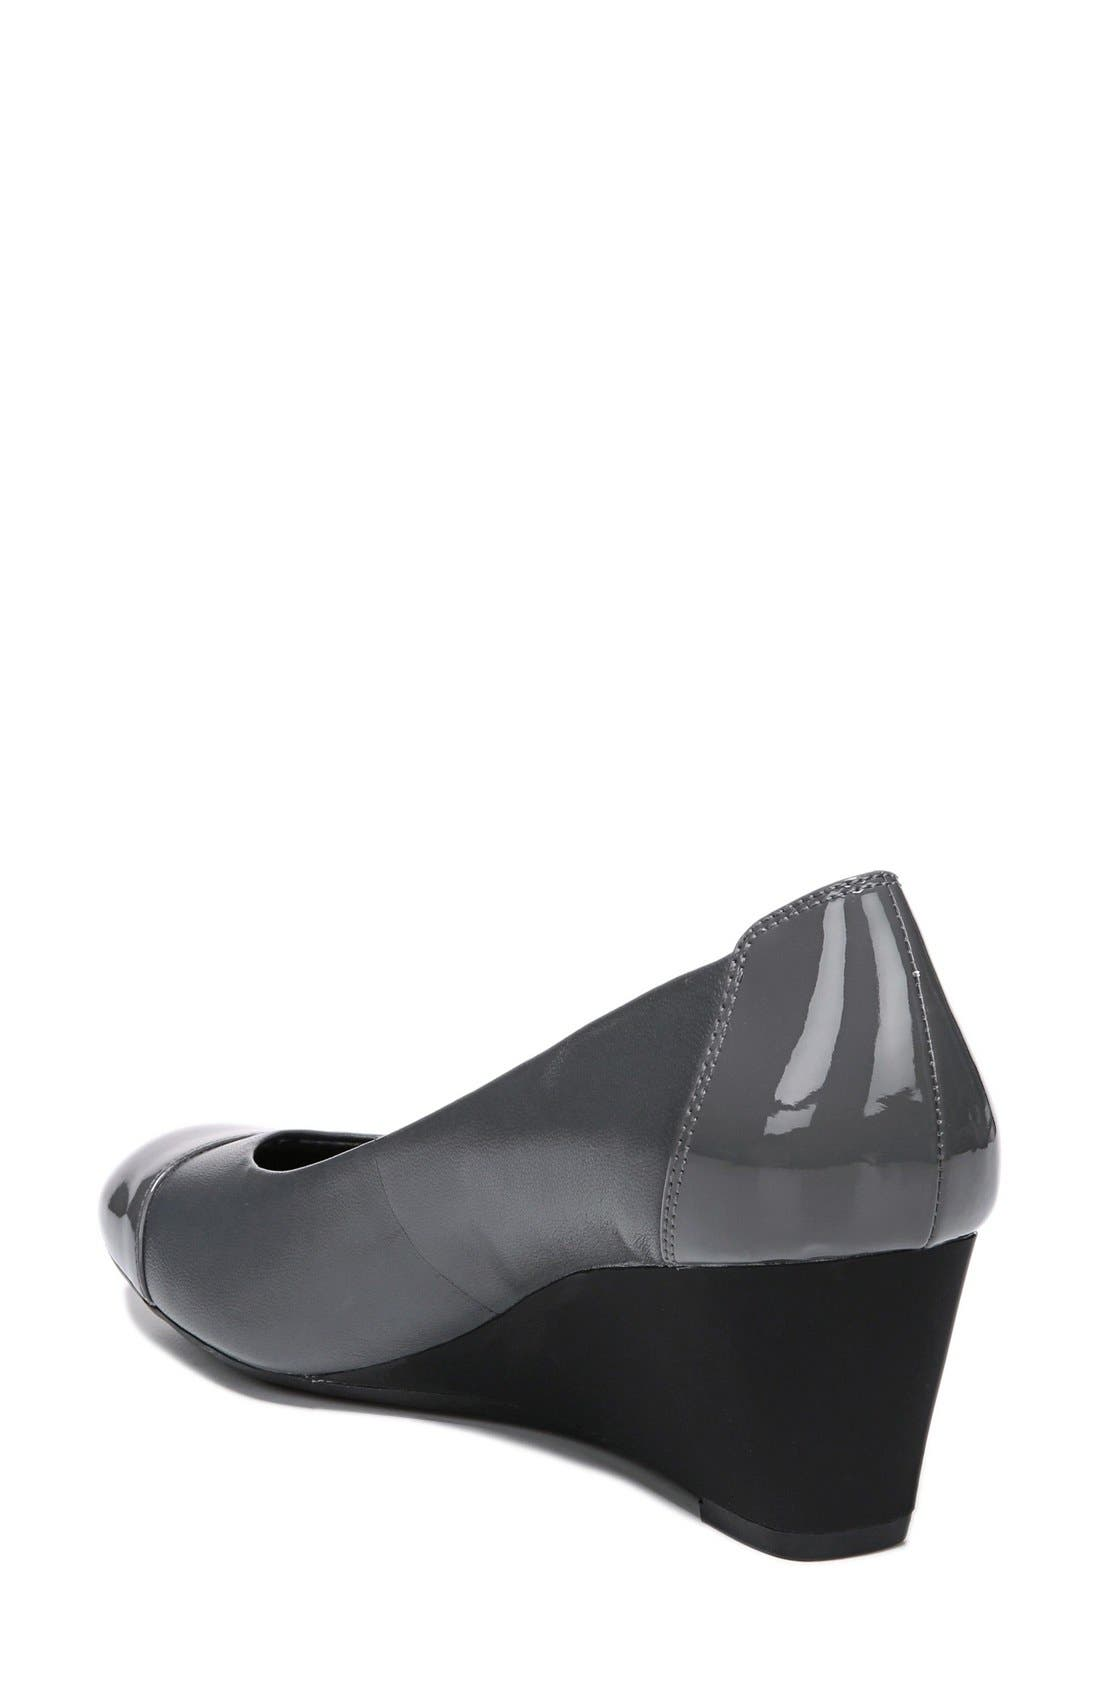 'Necile' Wedge Pump,                             Alternate thumbnail 2, color,                             Graphite Leather